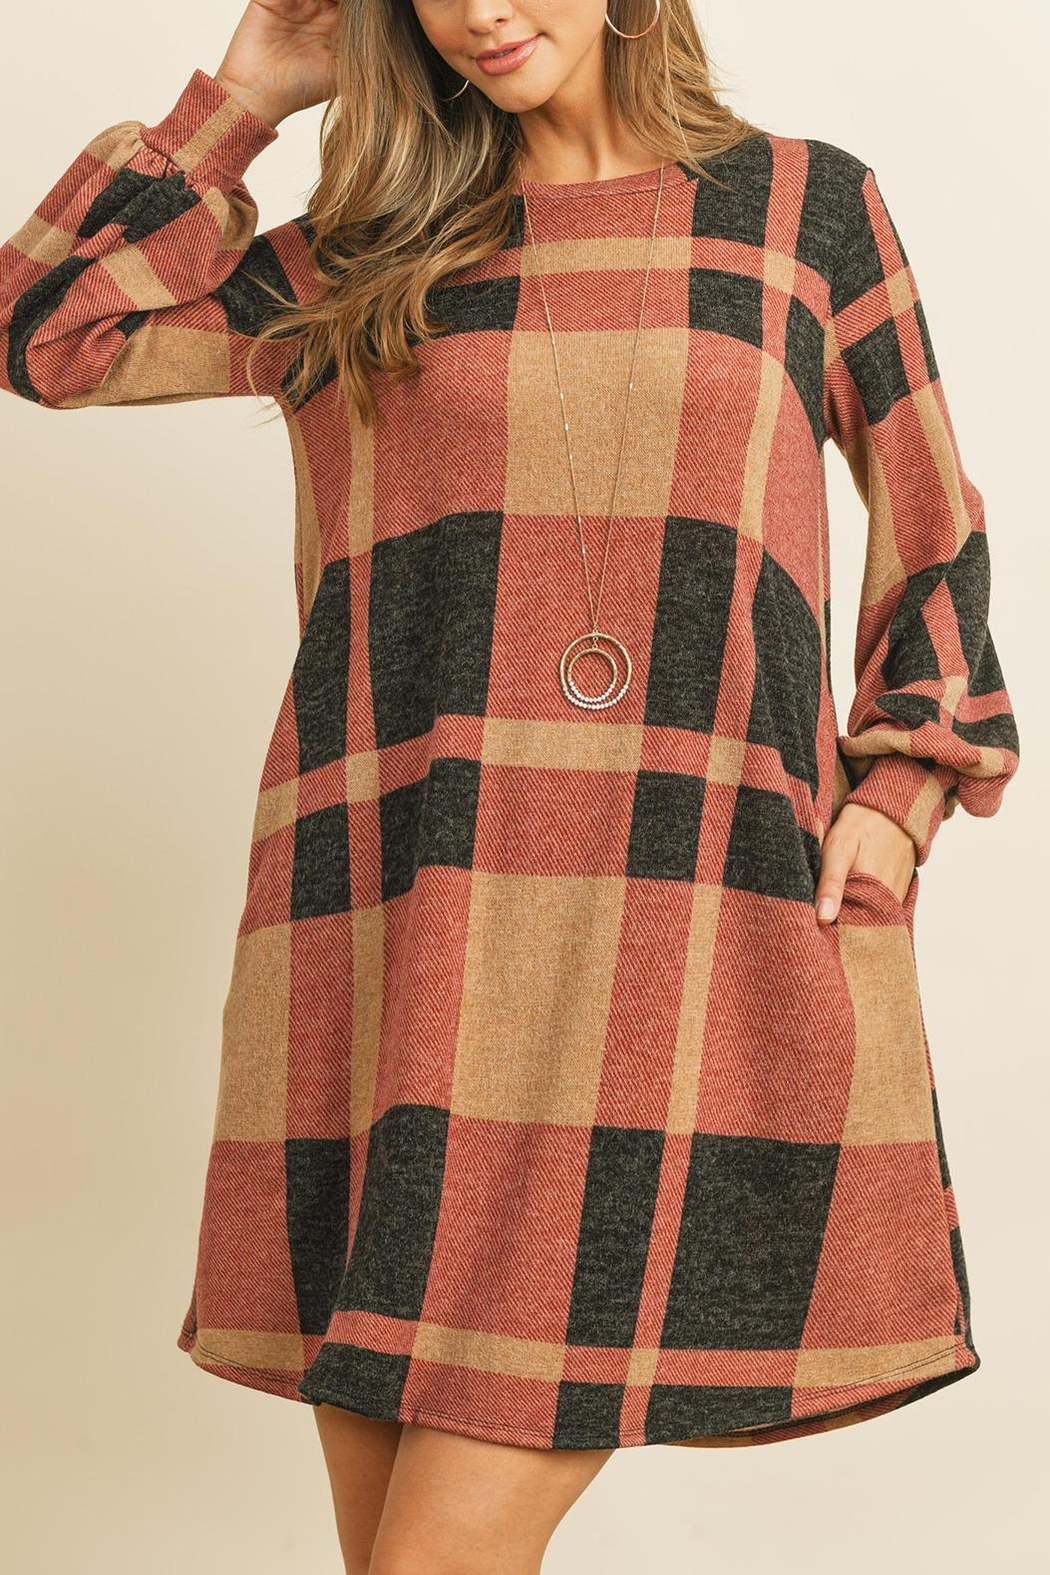 Riah Fashion Round-Neck-Puff-Sleeved-Plaid-Knee-Length-Dress - Front Full Image